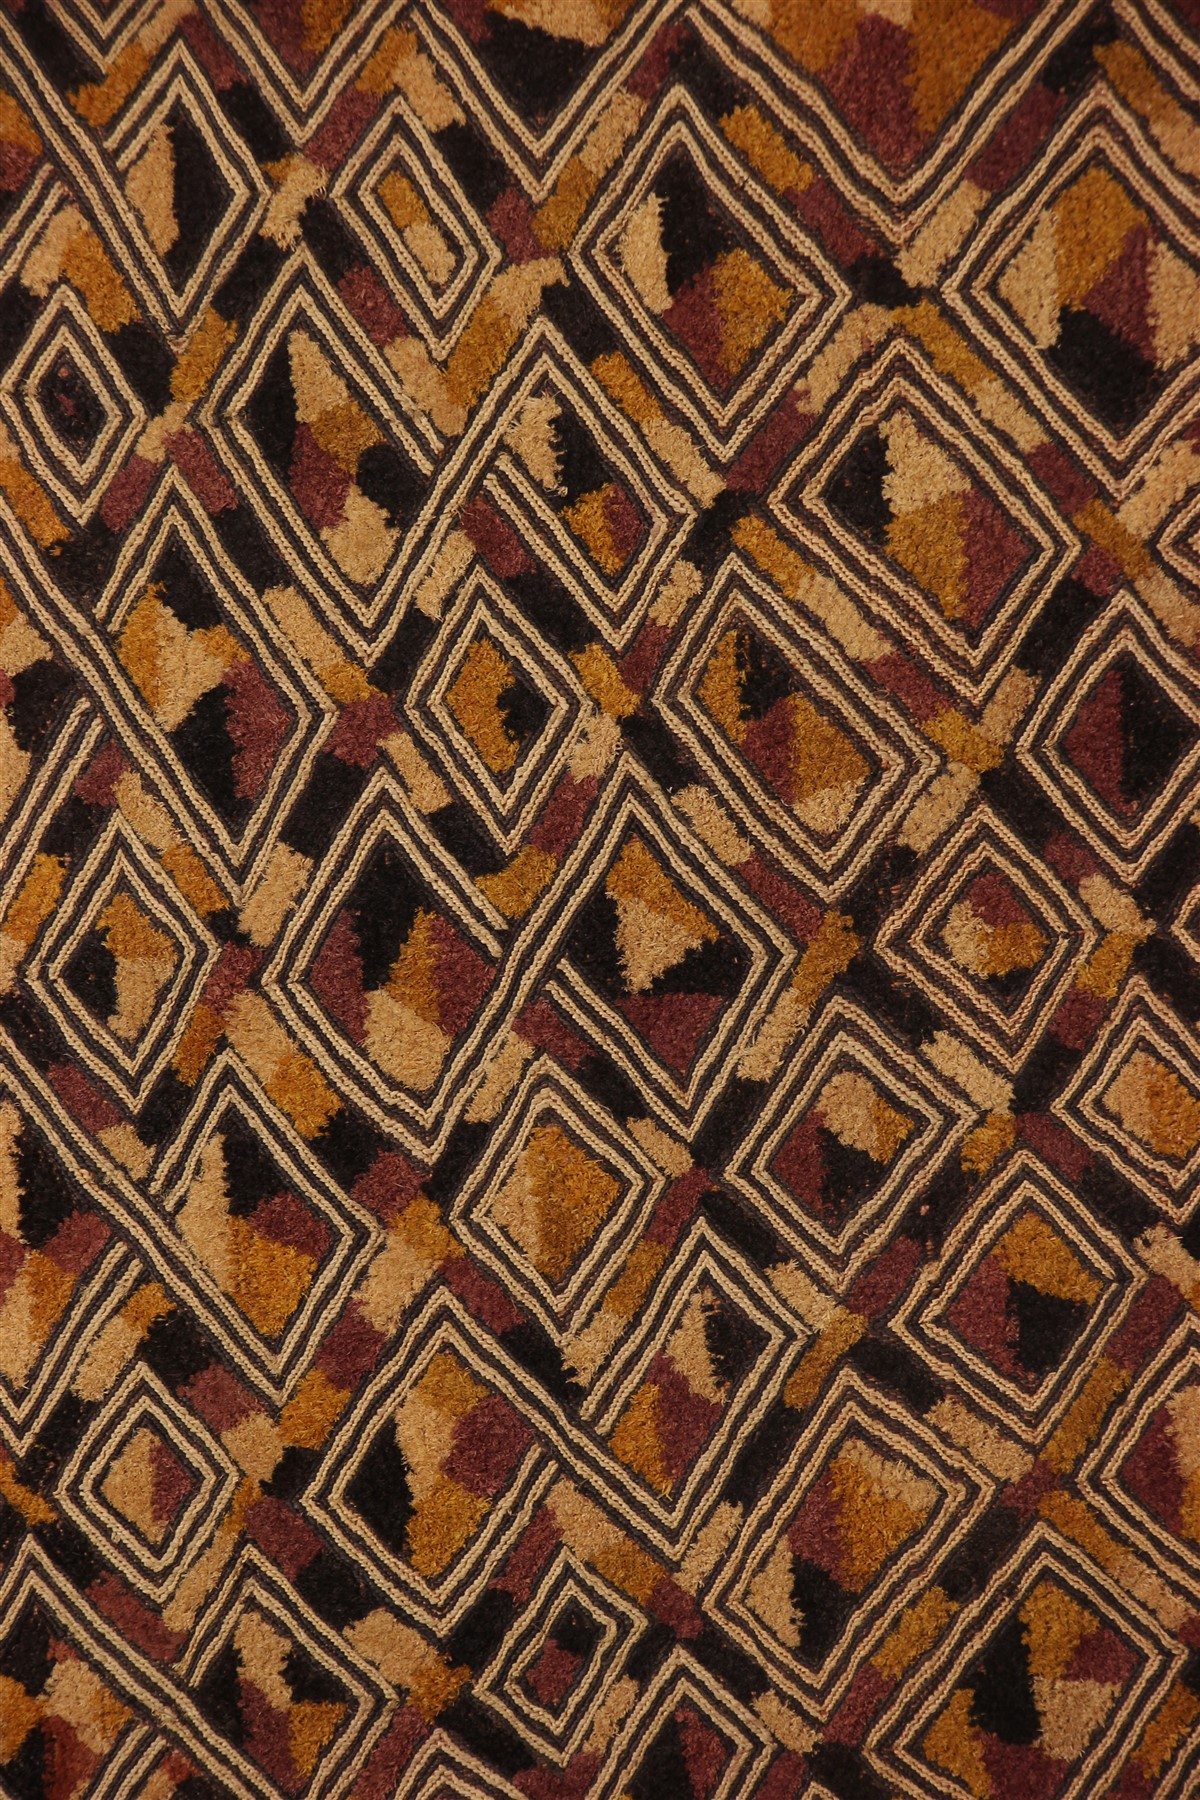 Velours Kuba du Kasaï - Déco africaine - Art africain traditionnel